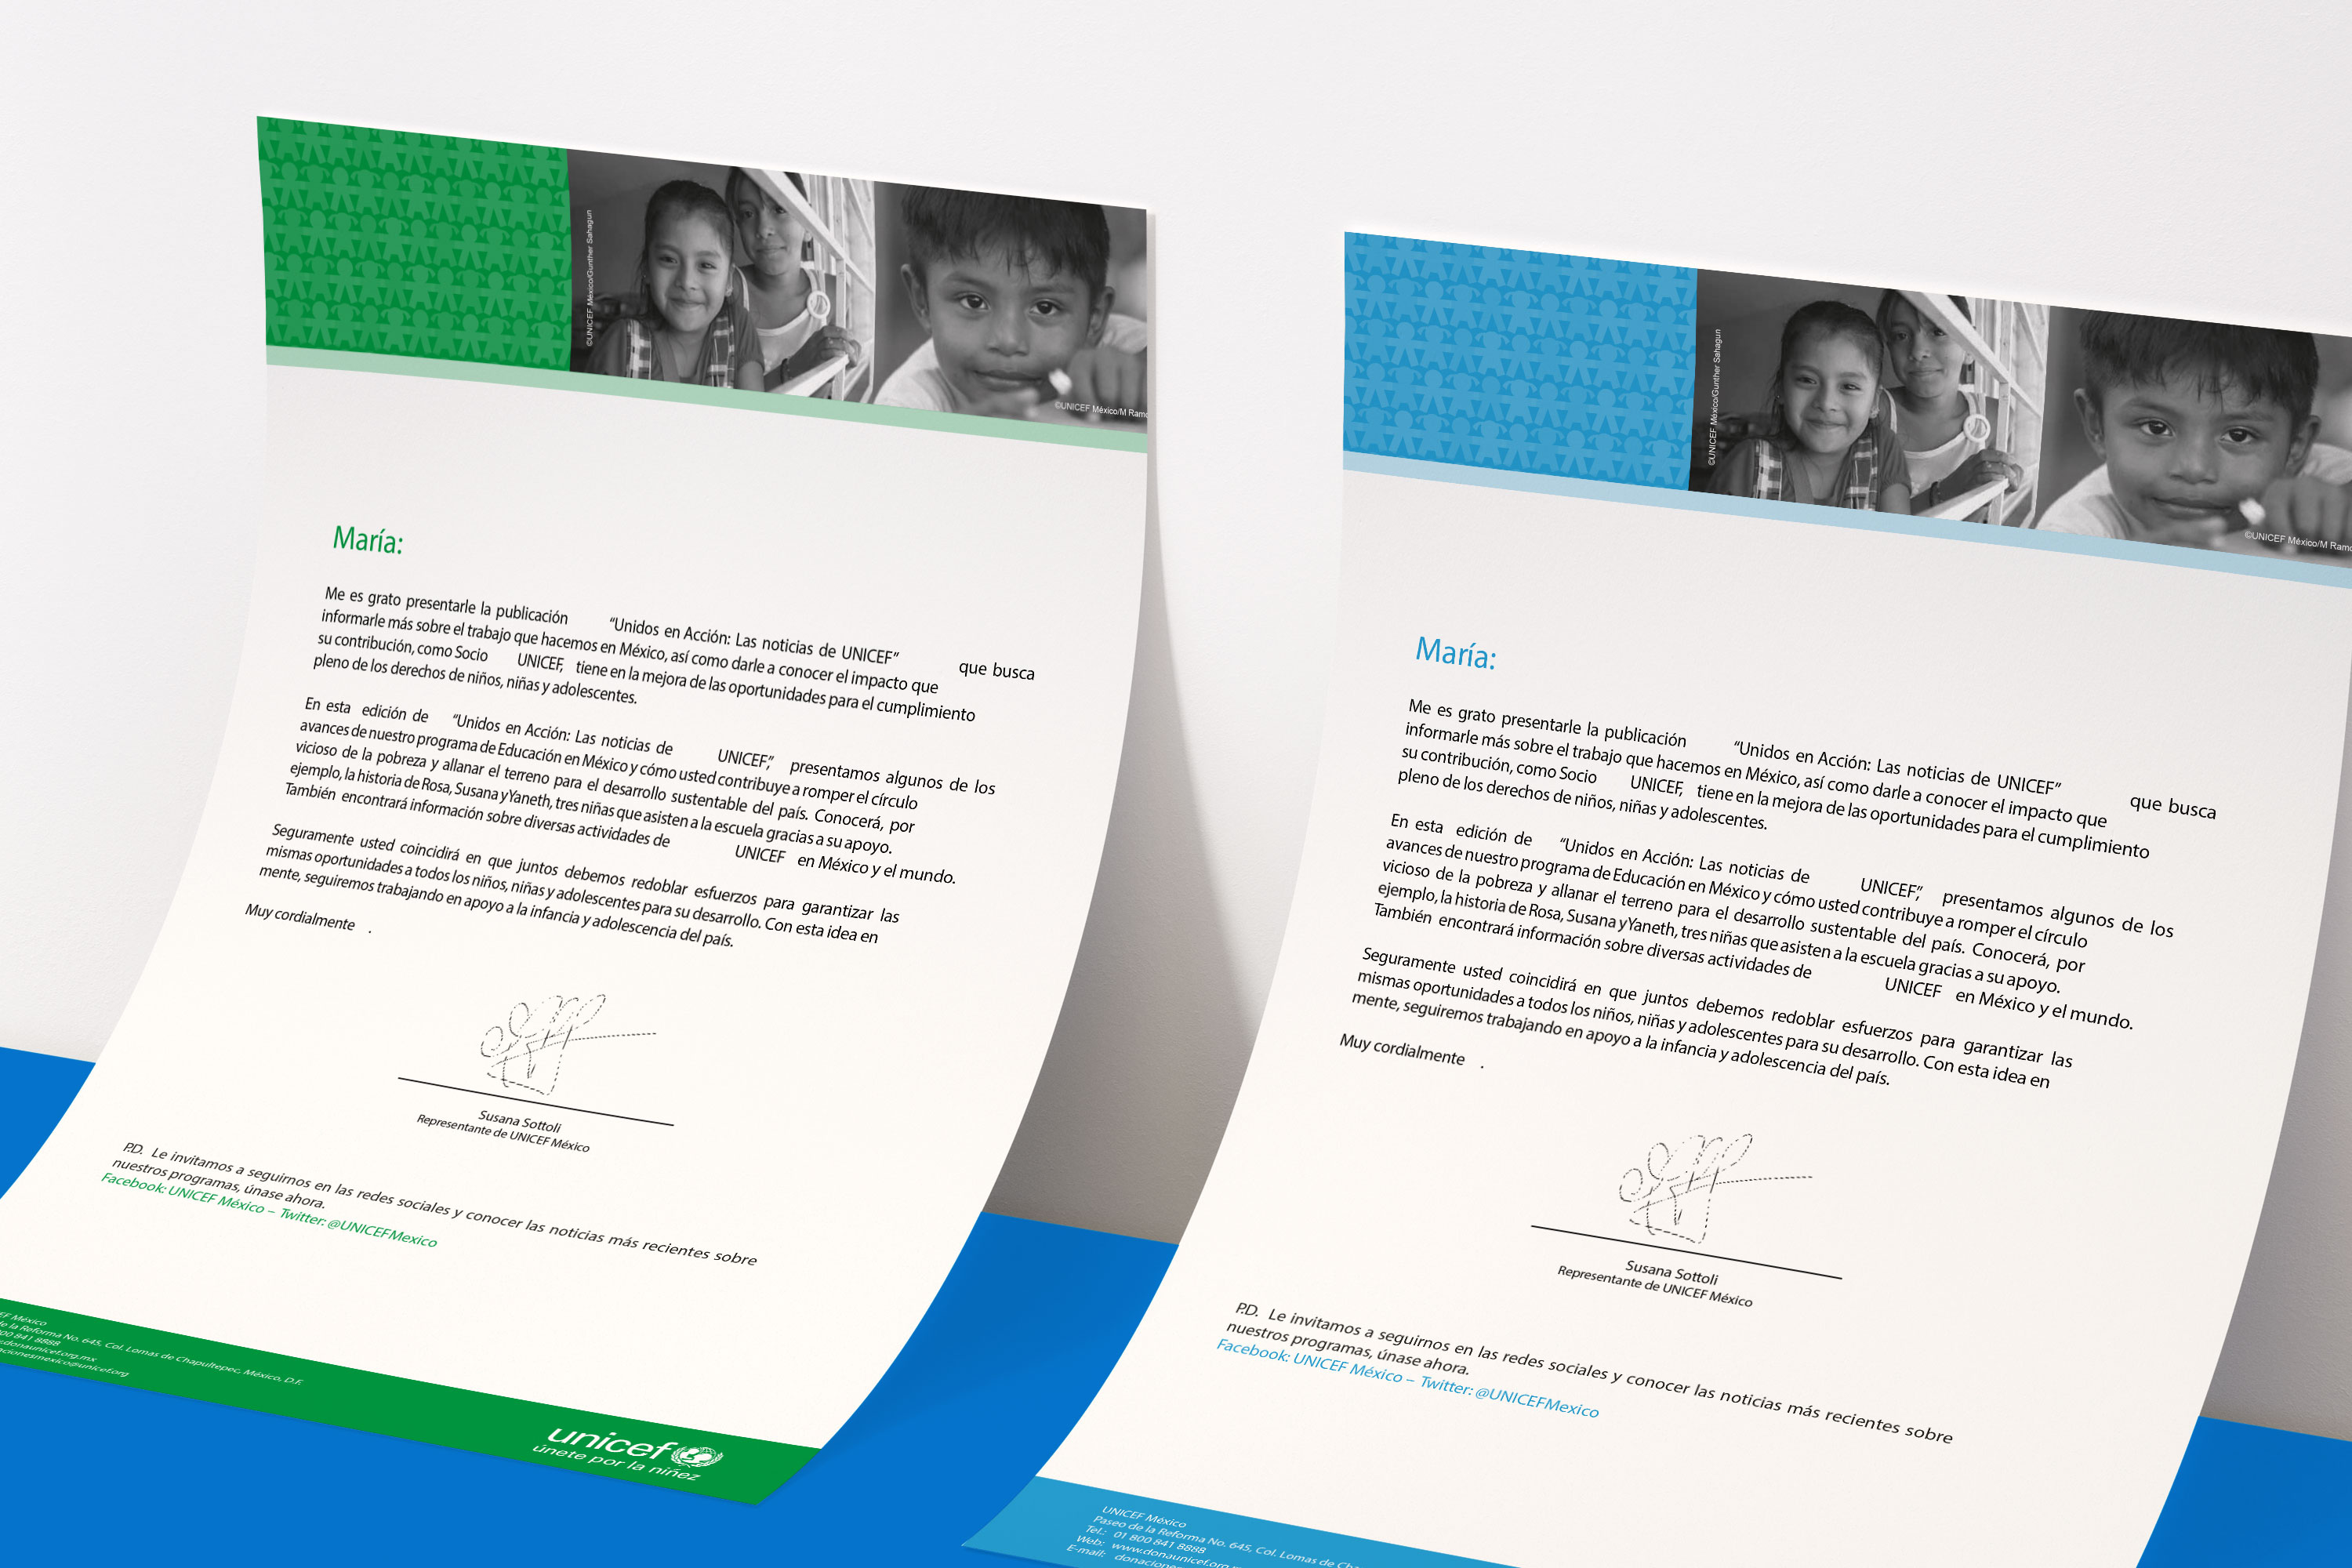 UNICEF-Informe-Anual-03